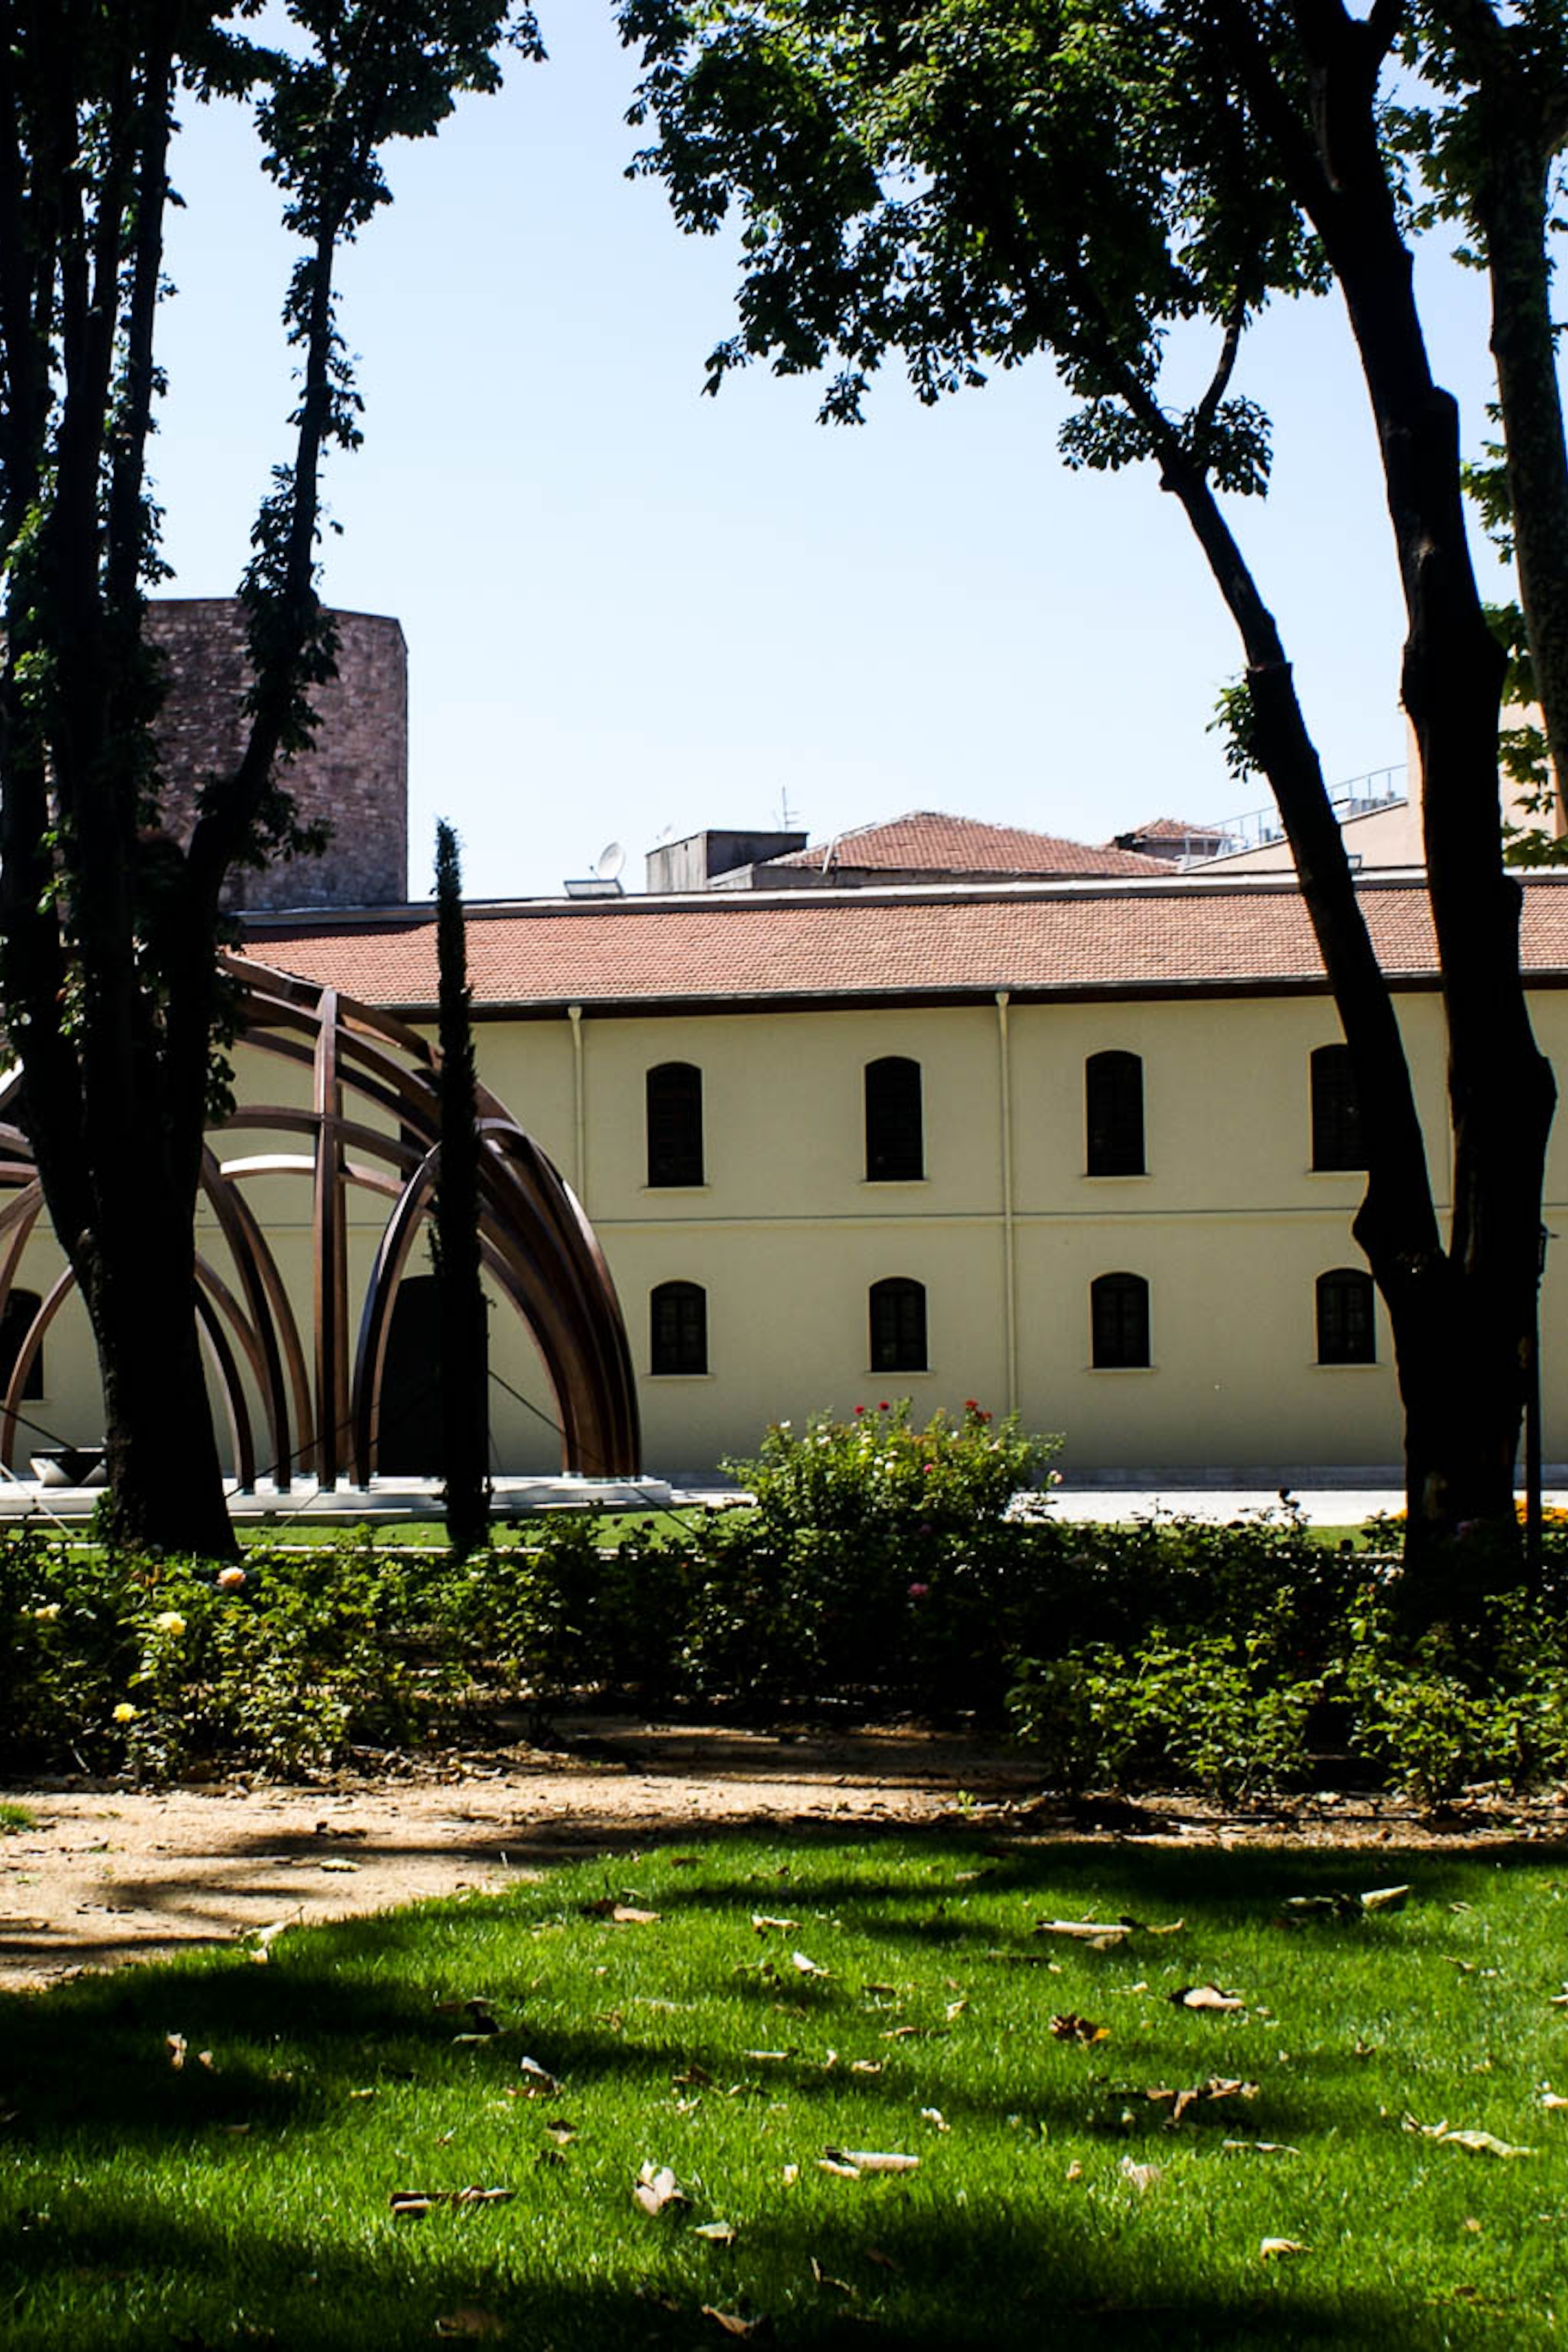 Istanbul Museum of the History of Science and Technology in Islam